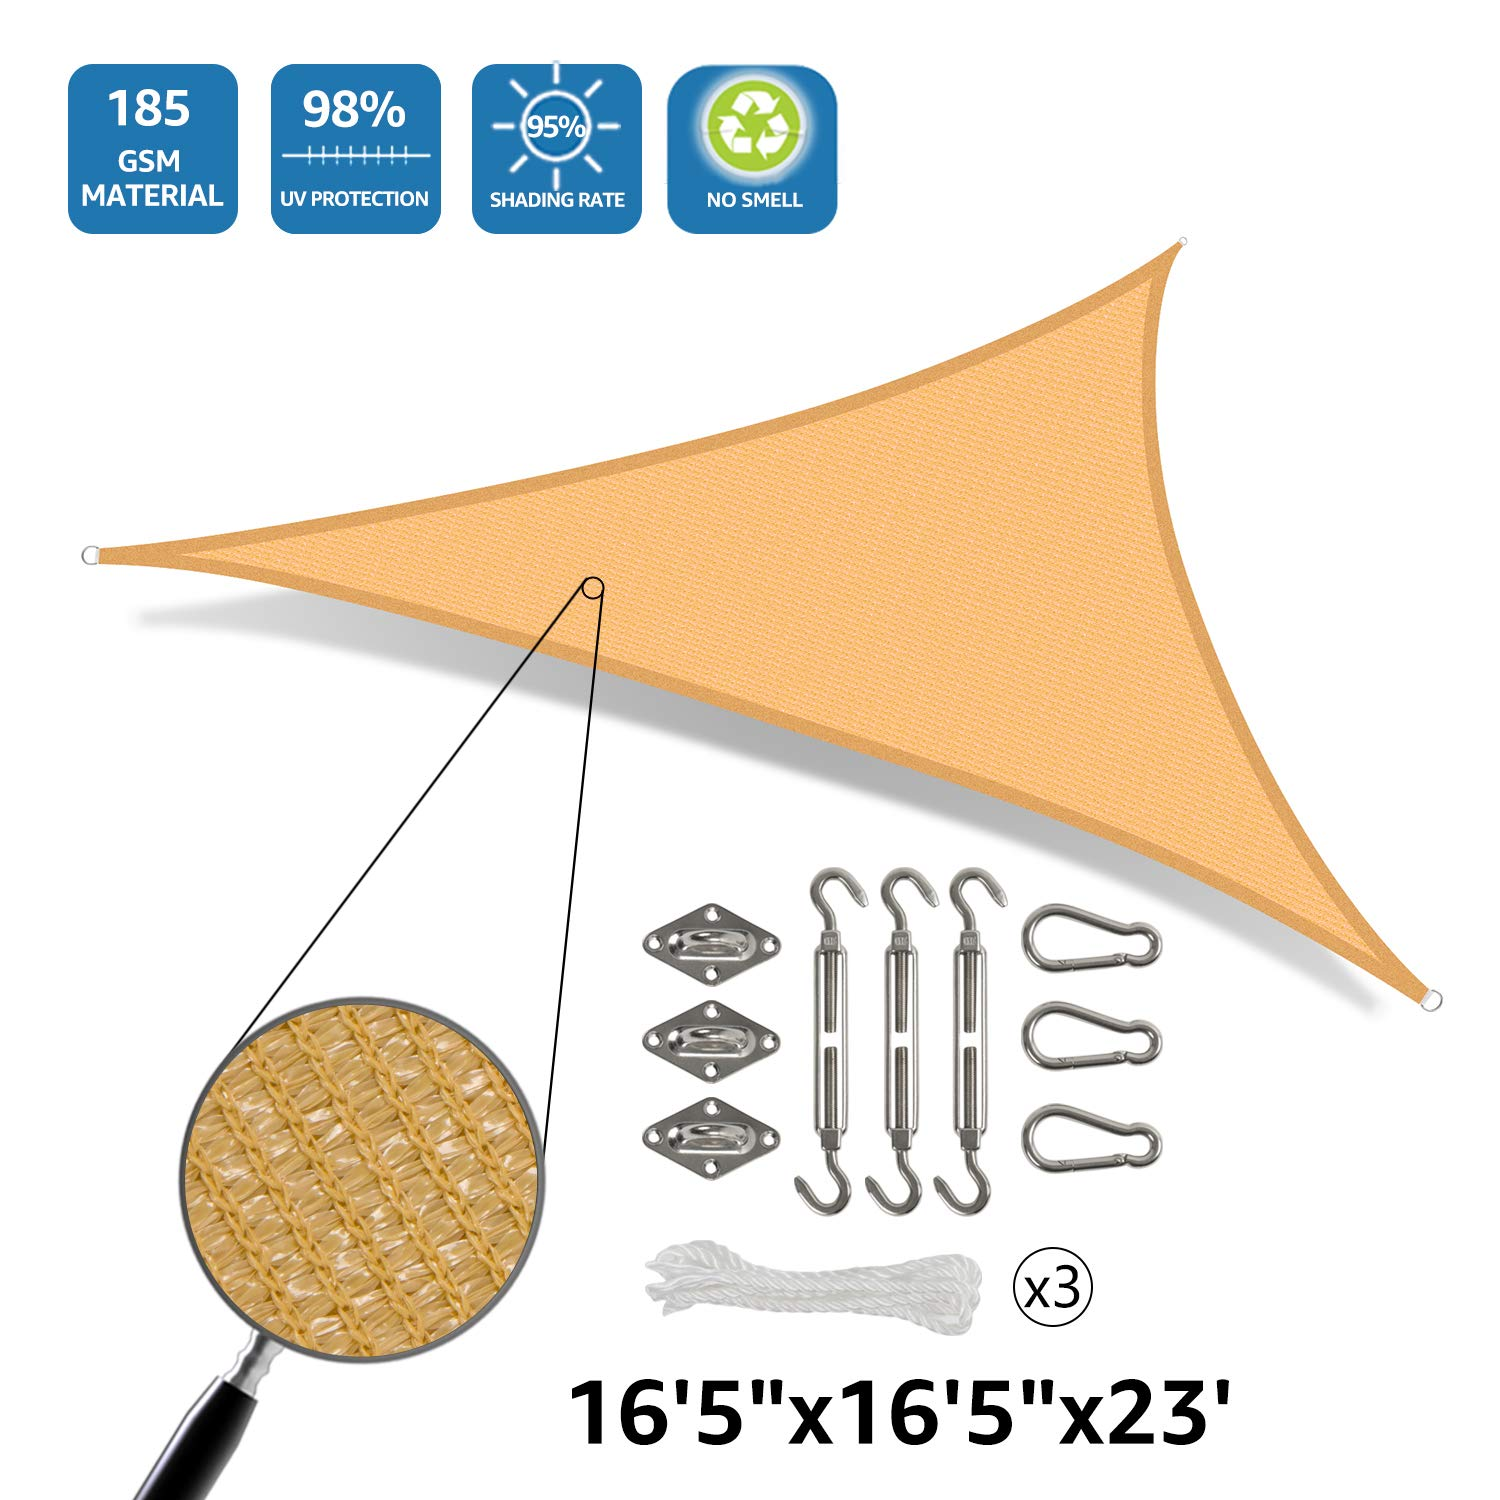 DOEWORKS 16'5''x16'5''x23' Right Triangle Sun Shade Sail with Hardware Kits, Shade for Patio Outdoor Garden, Sand